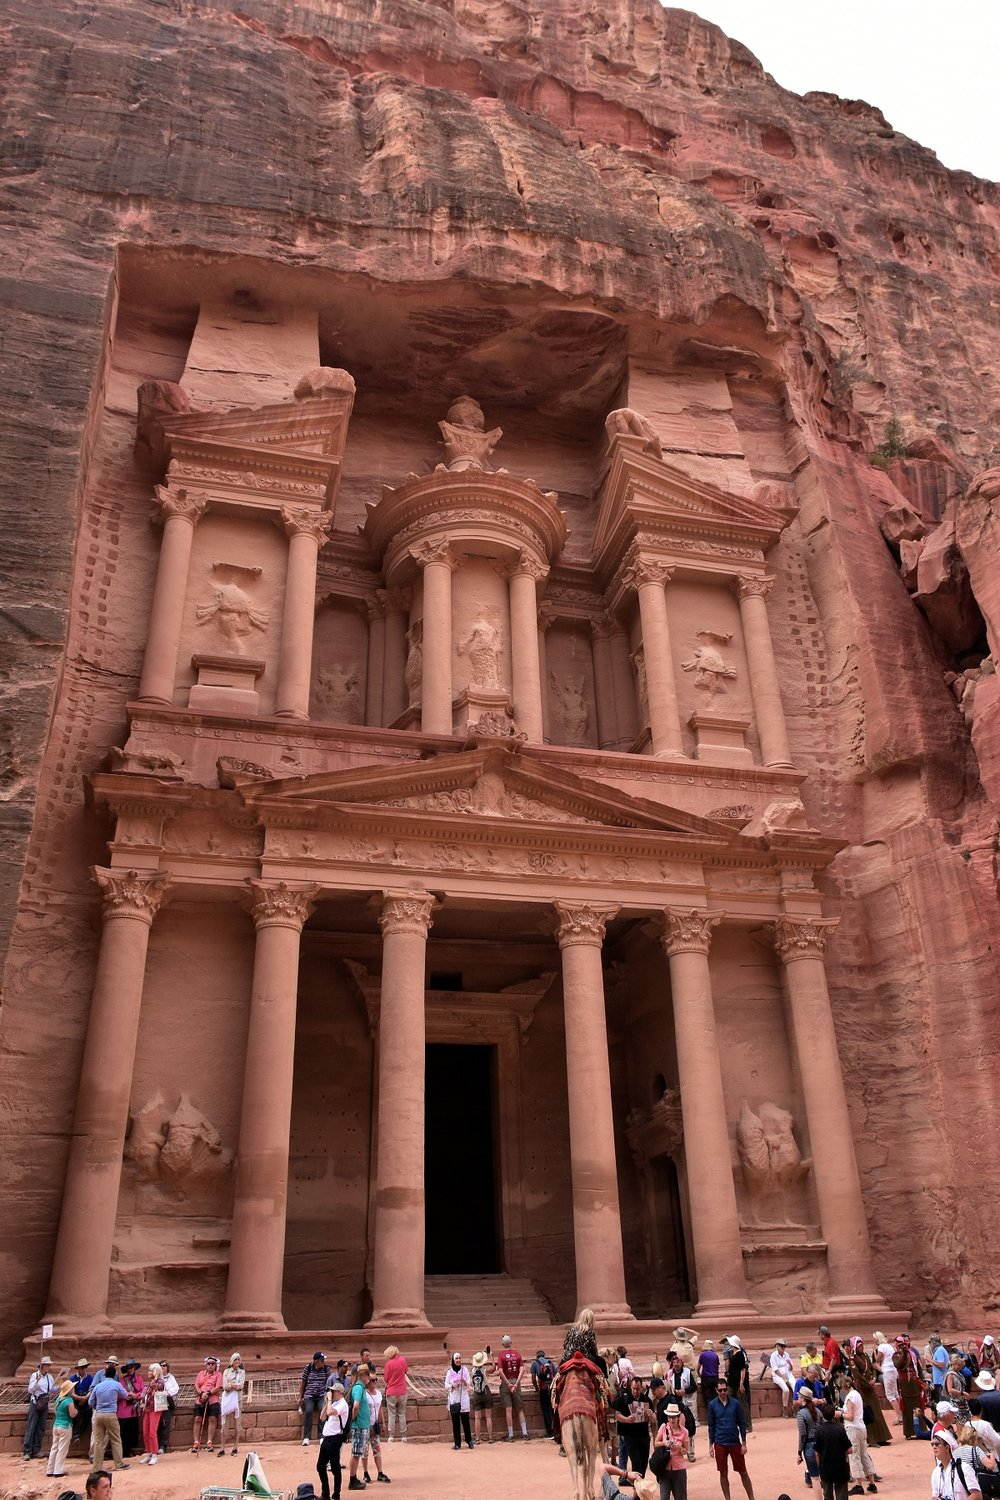 The Khazneh (Treasury) is the most prominent of all the sandstone facades in the famed city of Petra. After being ignored and forgotten for close to 2,000 years, many questions remain with respect to the time of its creation and its purpose. However, the numerous funerary images carved into the structure lead us to conclude that the building was used in association with the Nabataean Cult of the Dead.